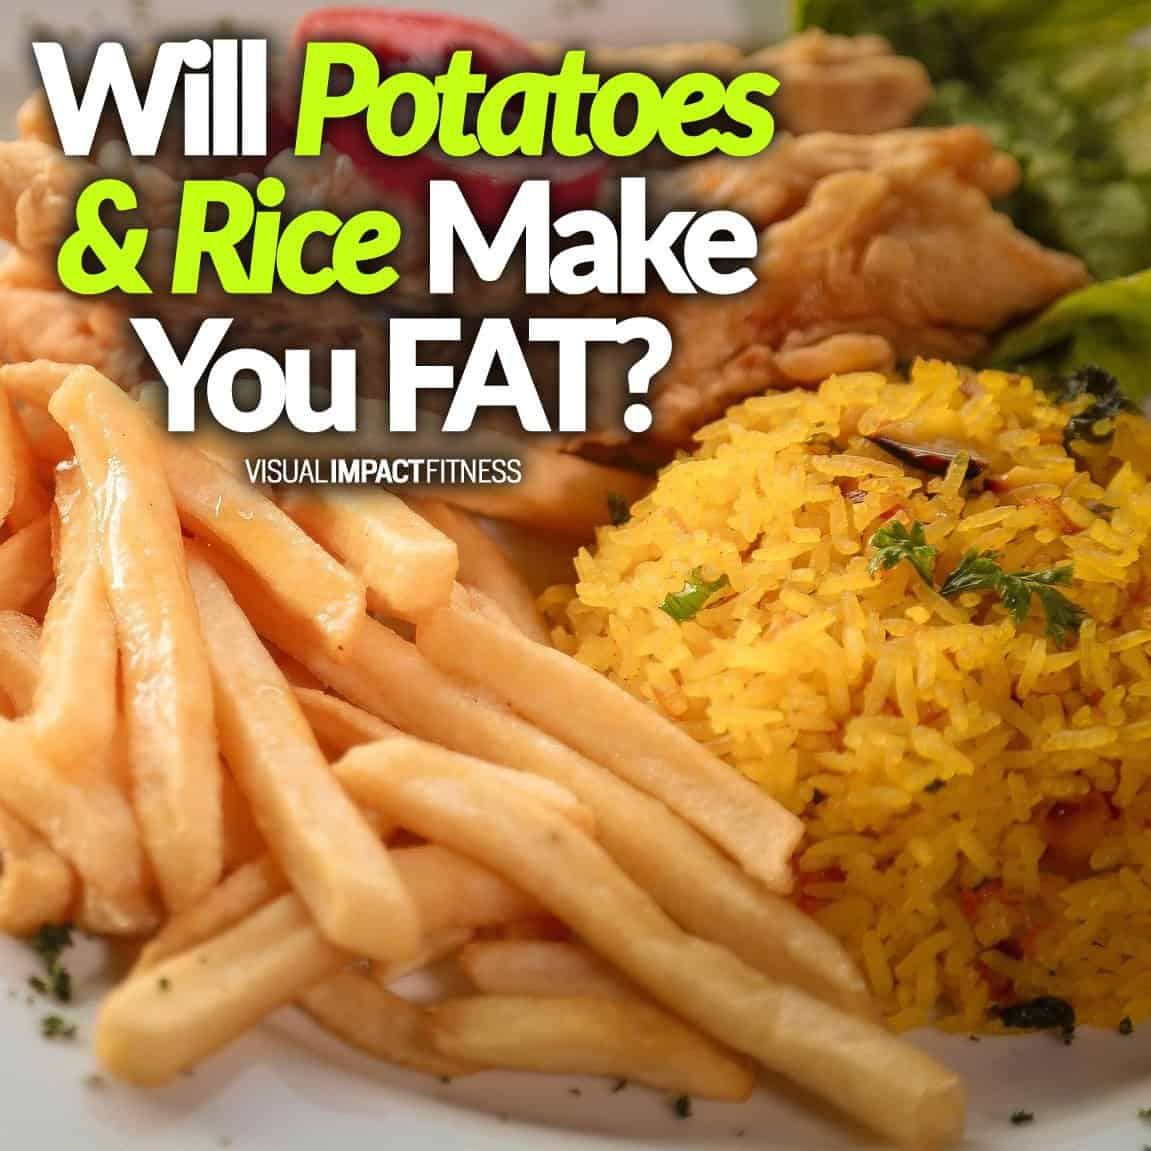 Will Potatoes & Rice Make You FAT